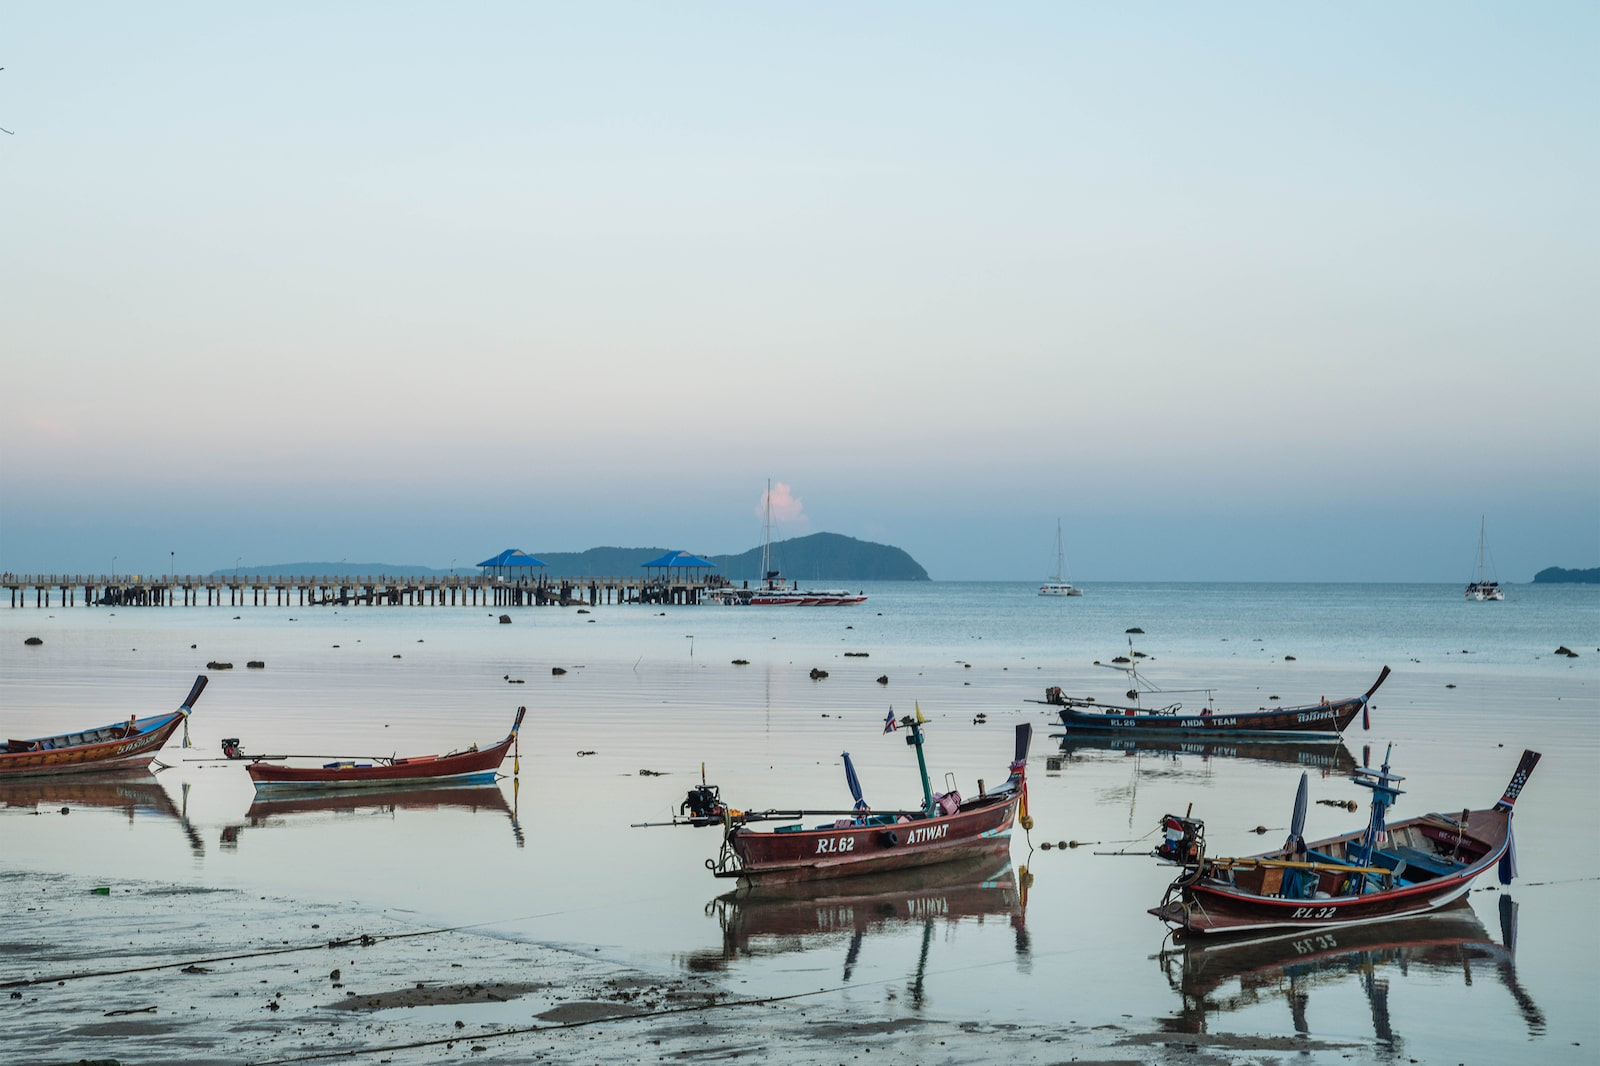 Multiple Sampan boats resting by Phuket sea with island in distance